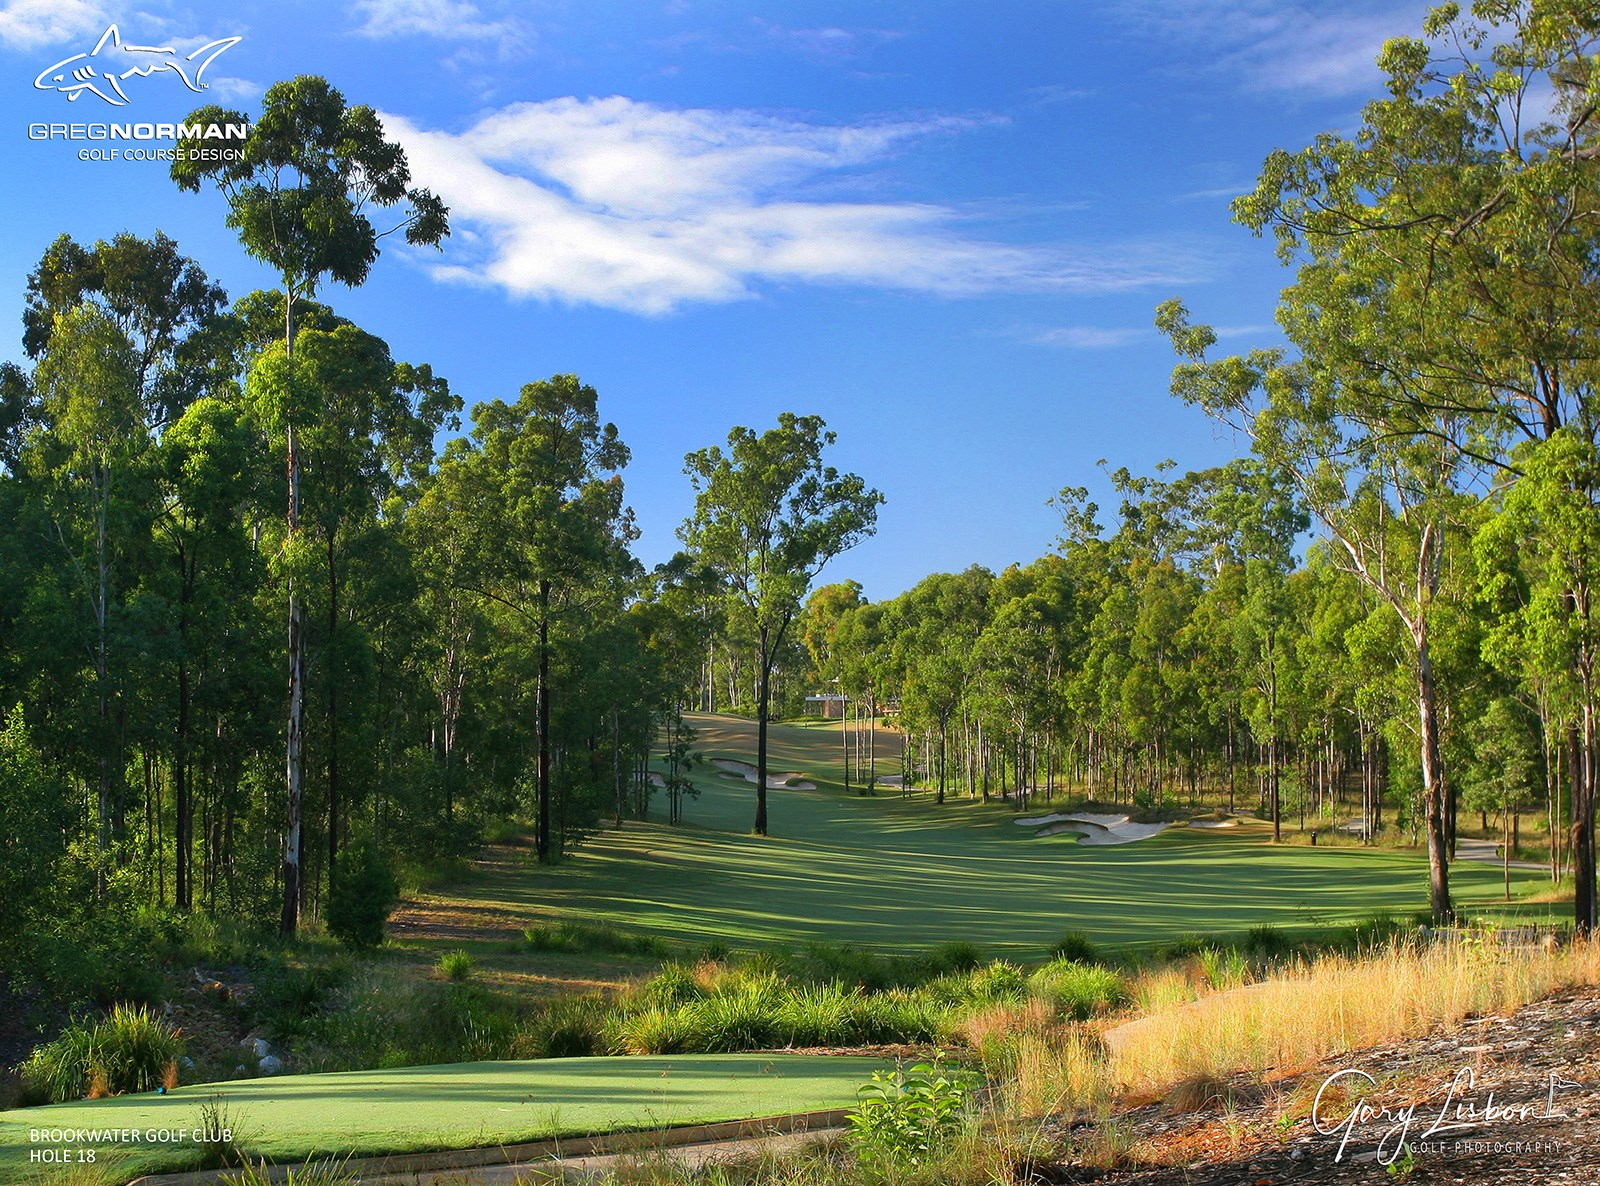 Brookwater Golf & Country Club Hole 18